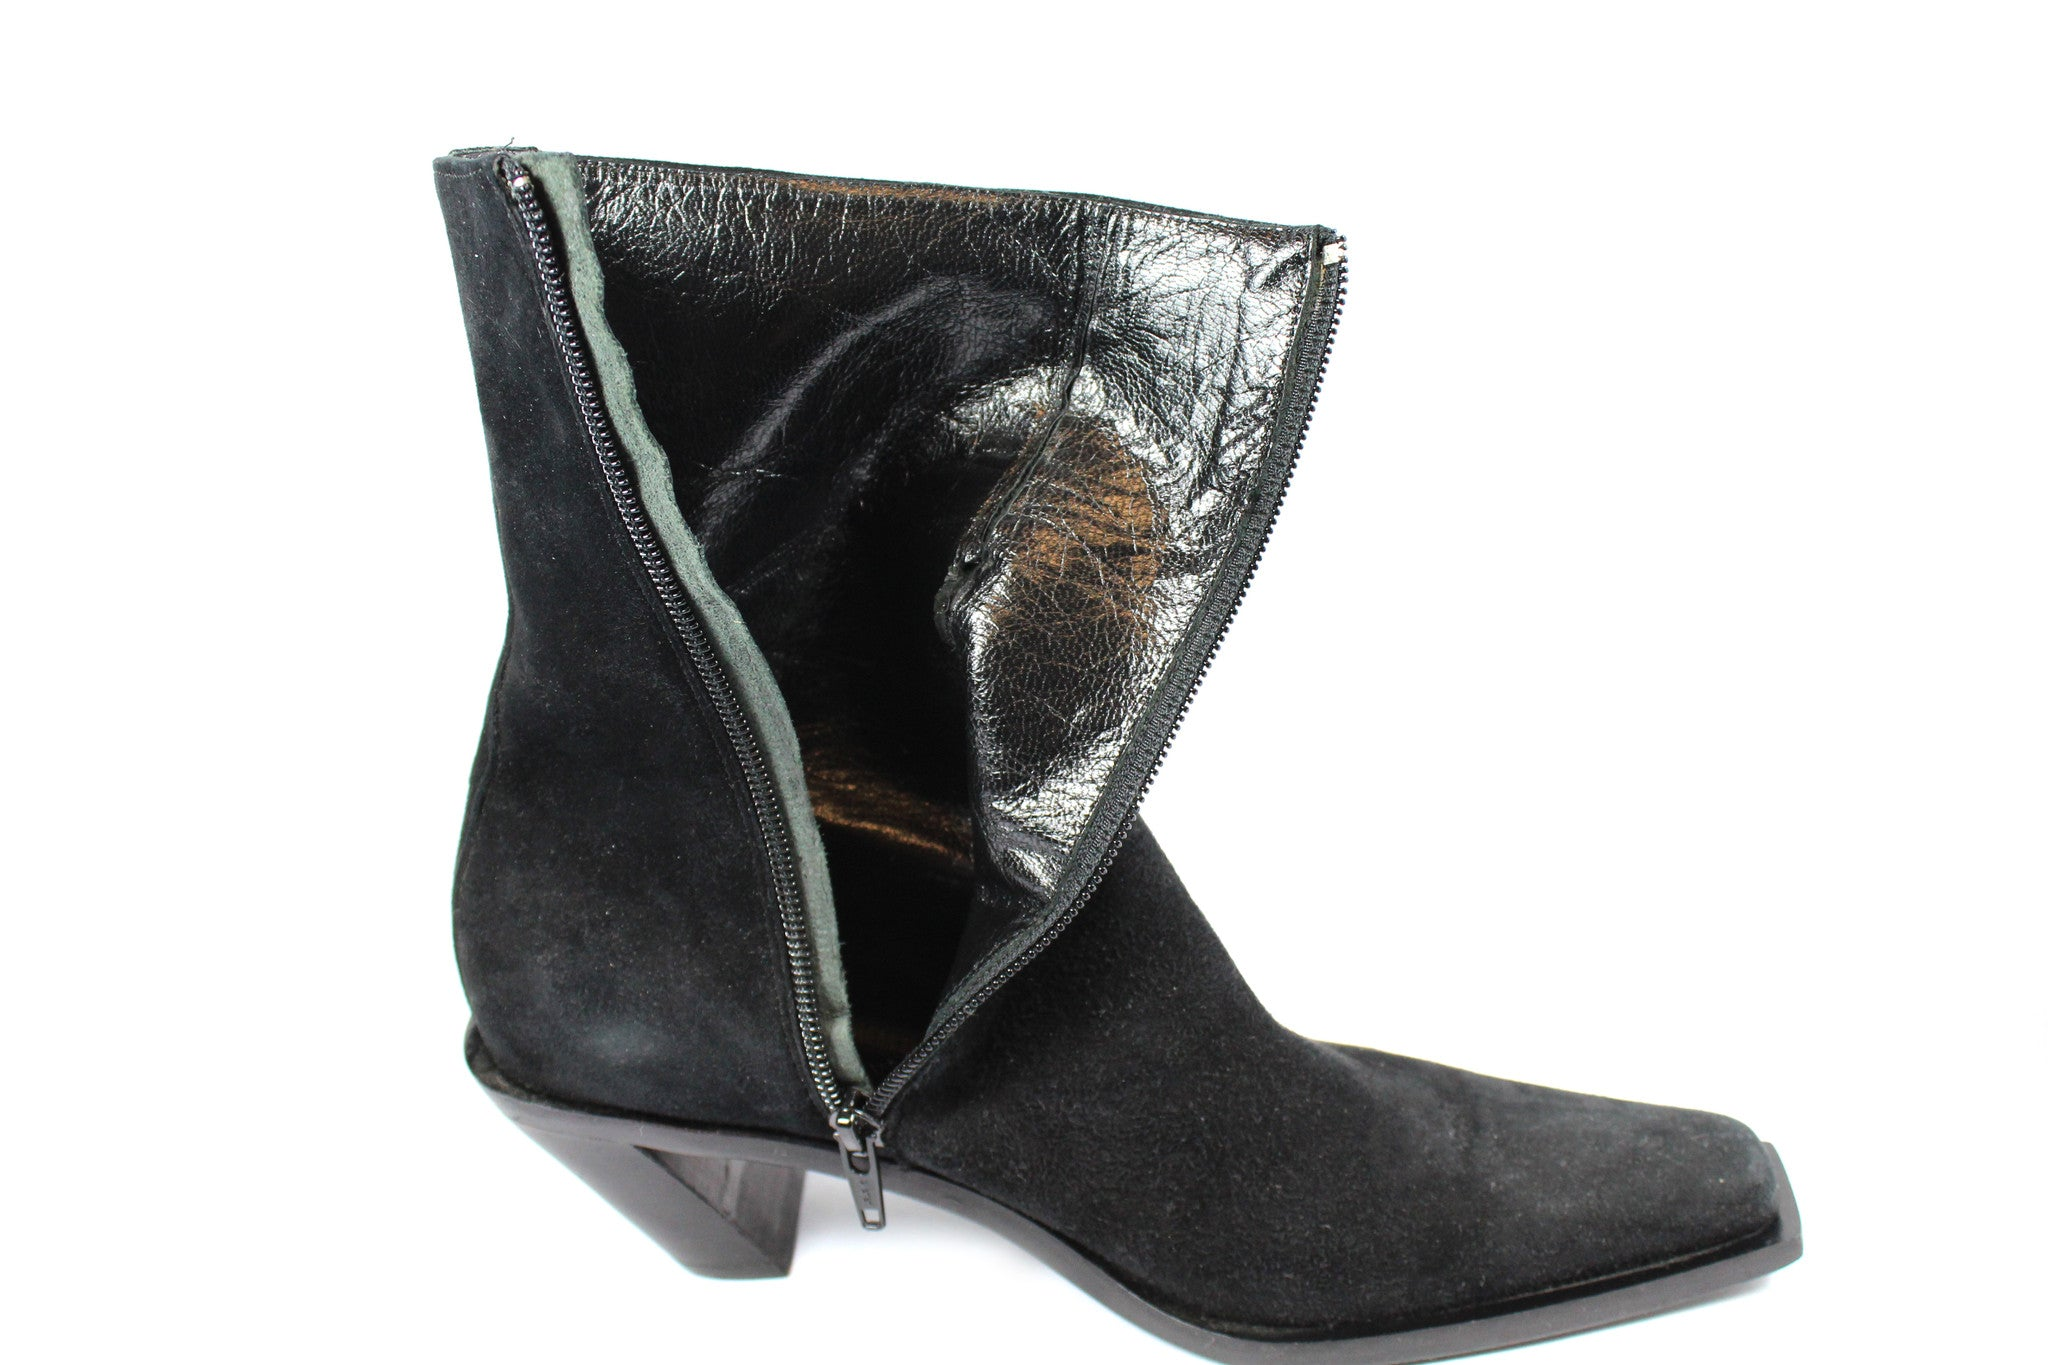 'SOLD' Ann Demeulemeester Suede Ankle Boots w Slanted Heel (Size 37) - Encore Consignment - 9